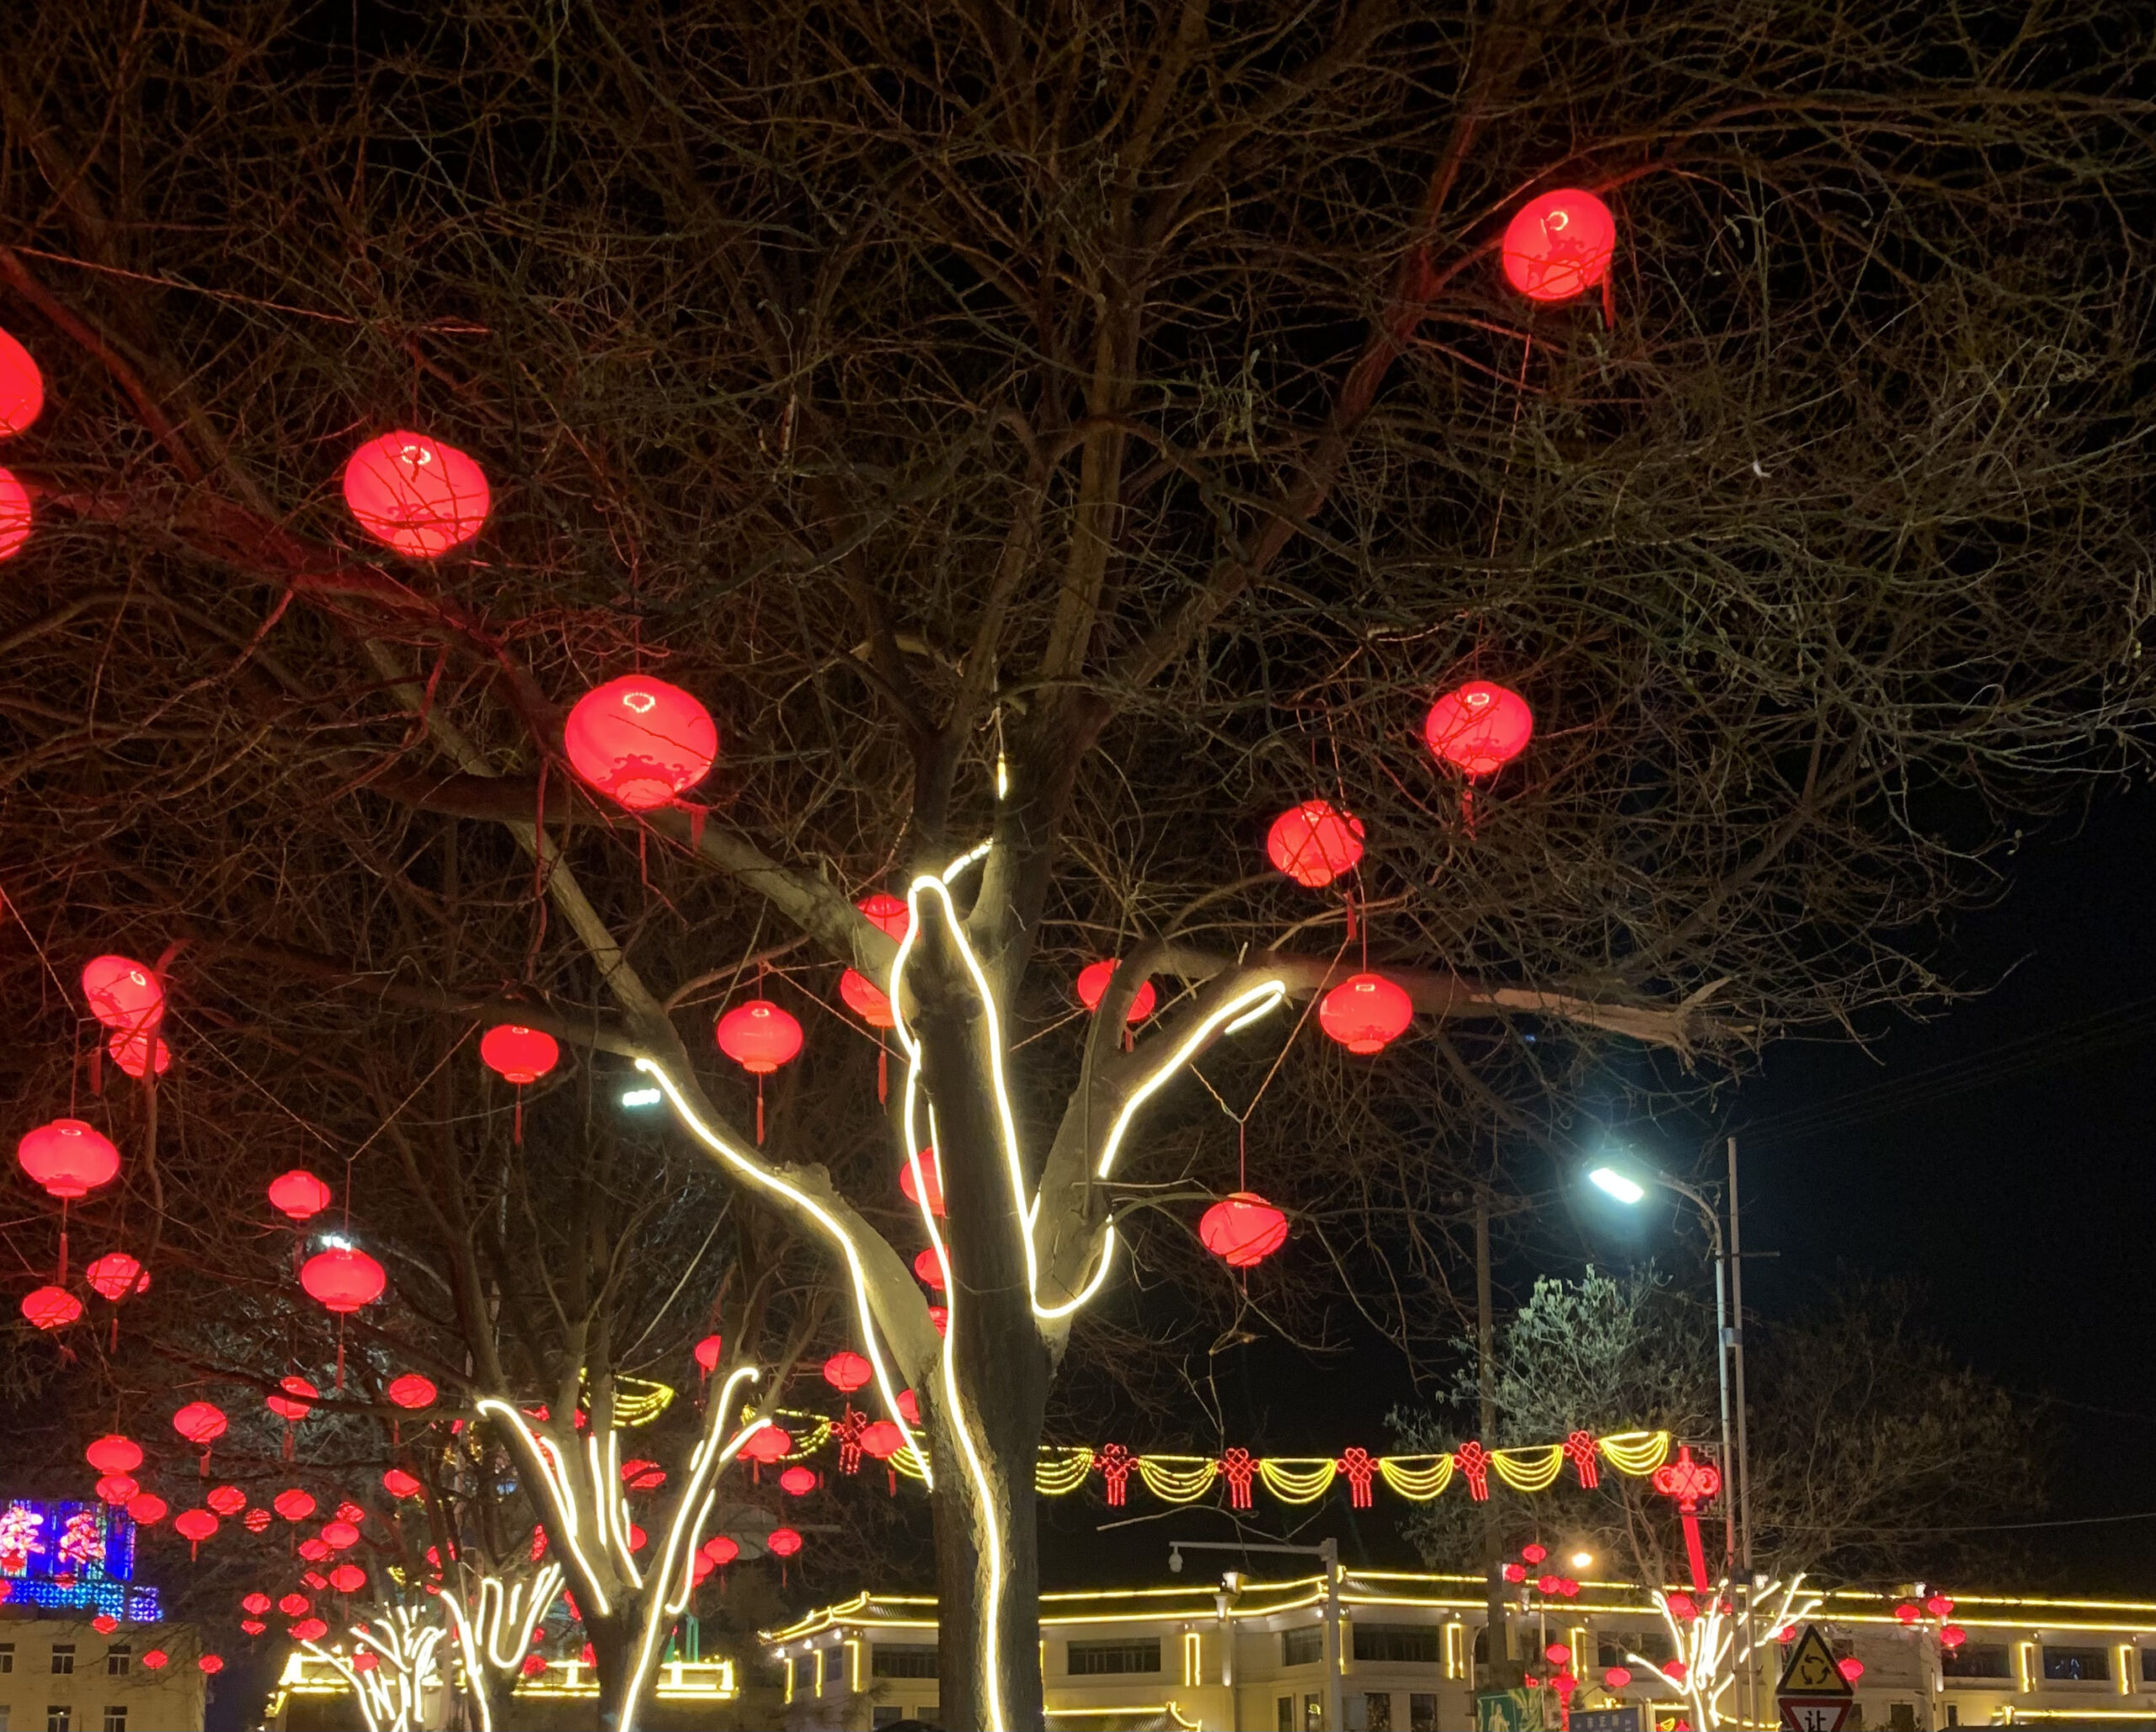 large tree with string lights and paper lanterns at night